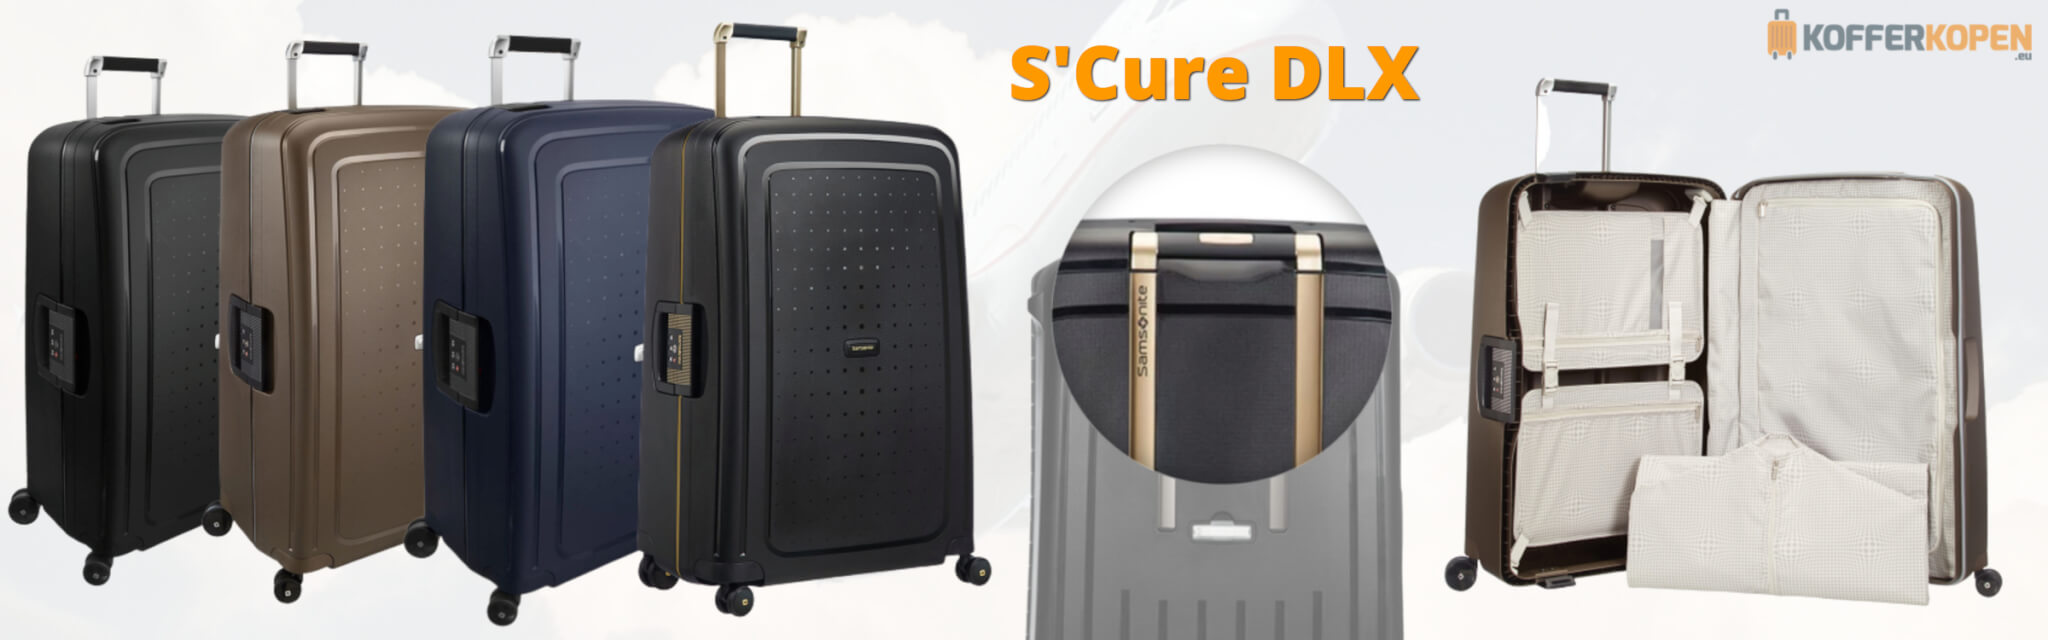 Samsonite S'Cure DLX Spinner koffers